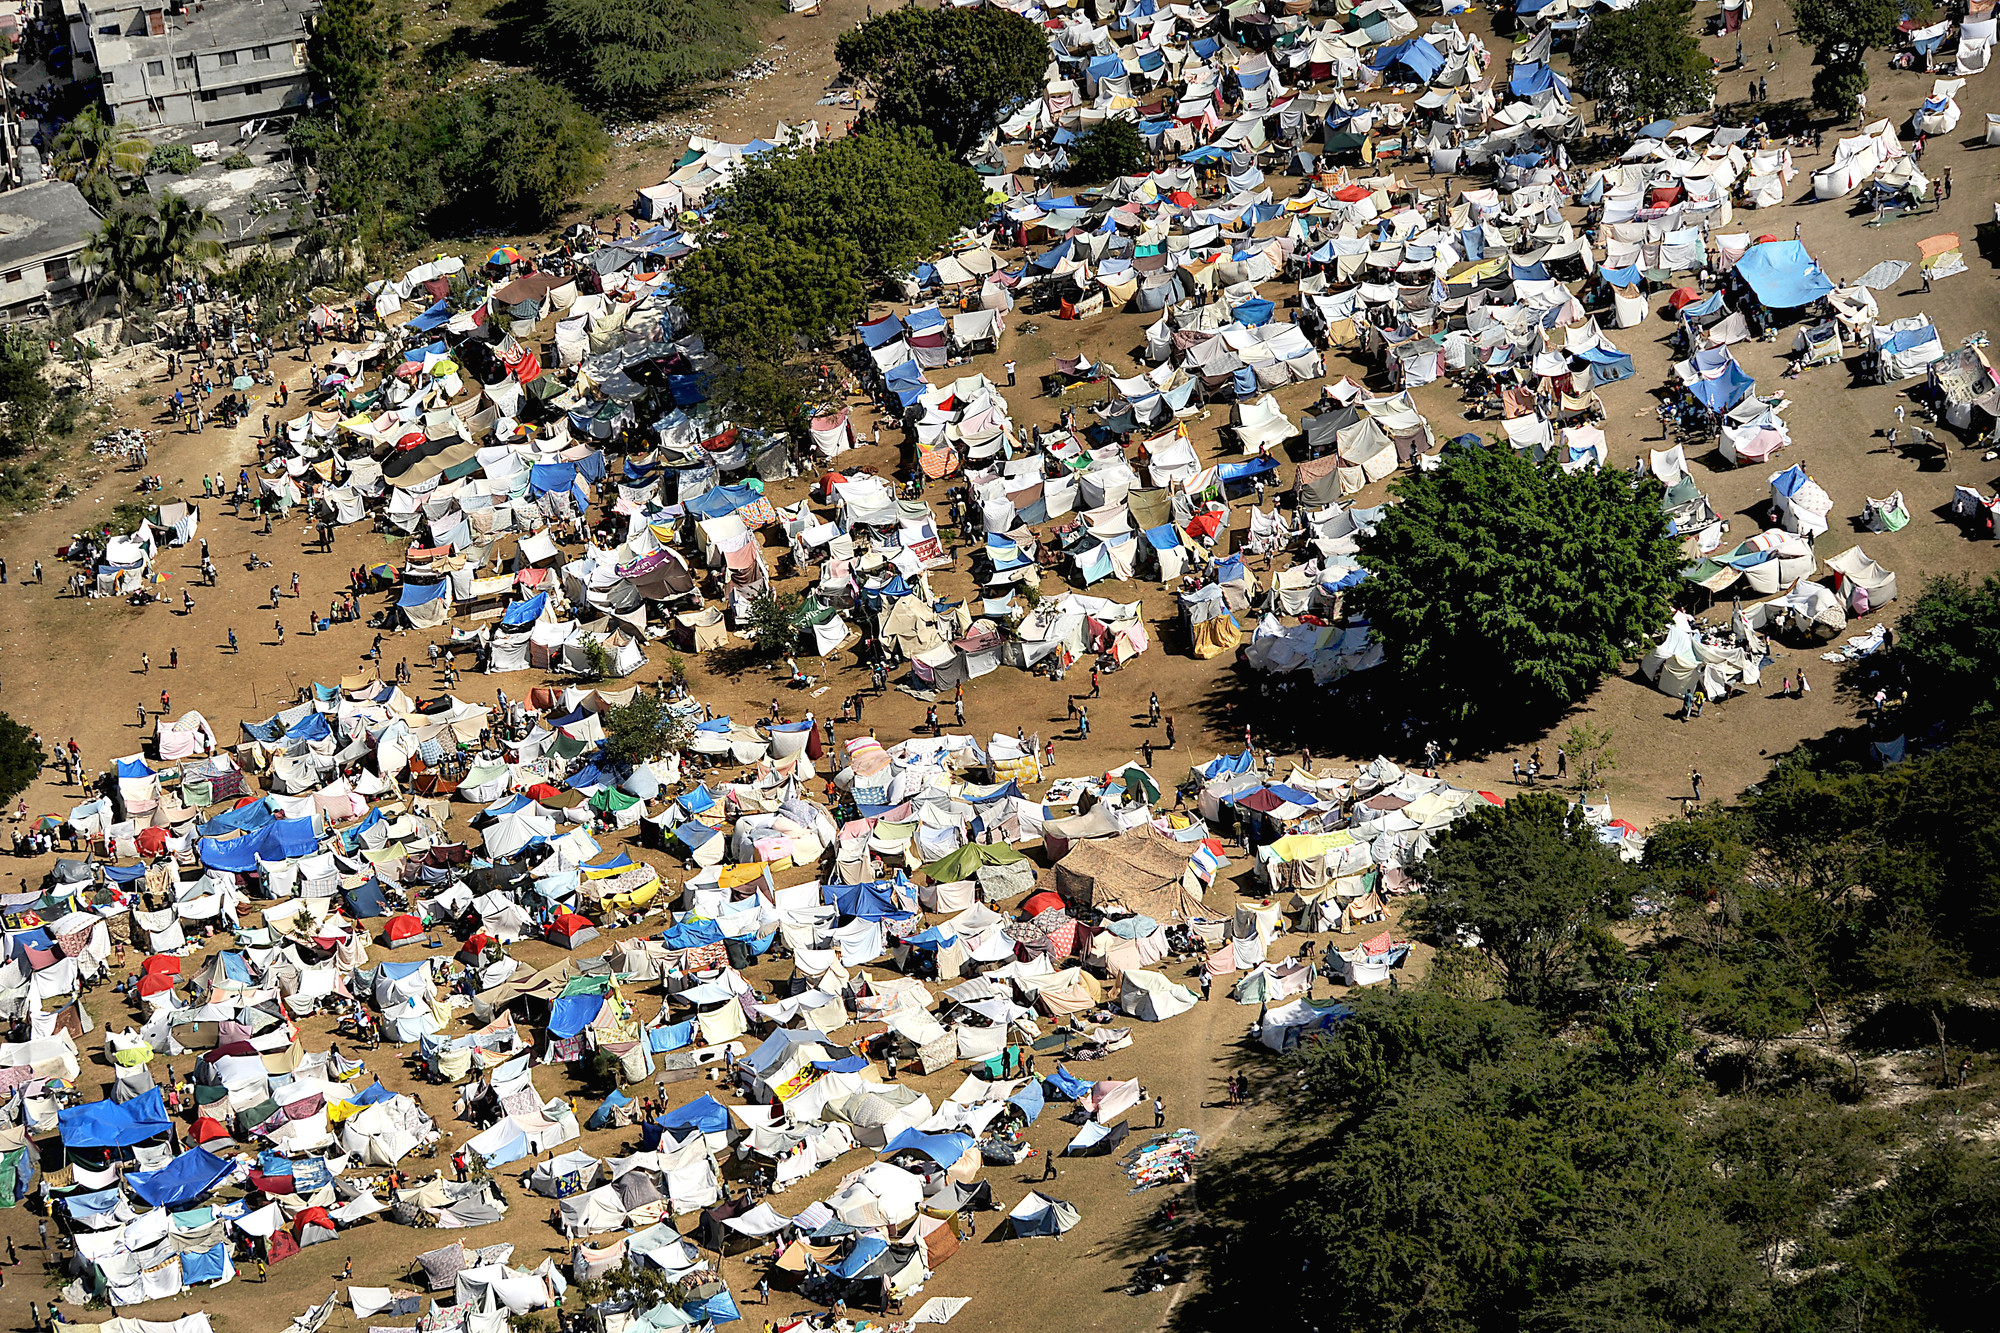 A tent city in Port-Au-Prince, Haiti. Image © Wikimedia Commons